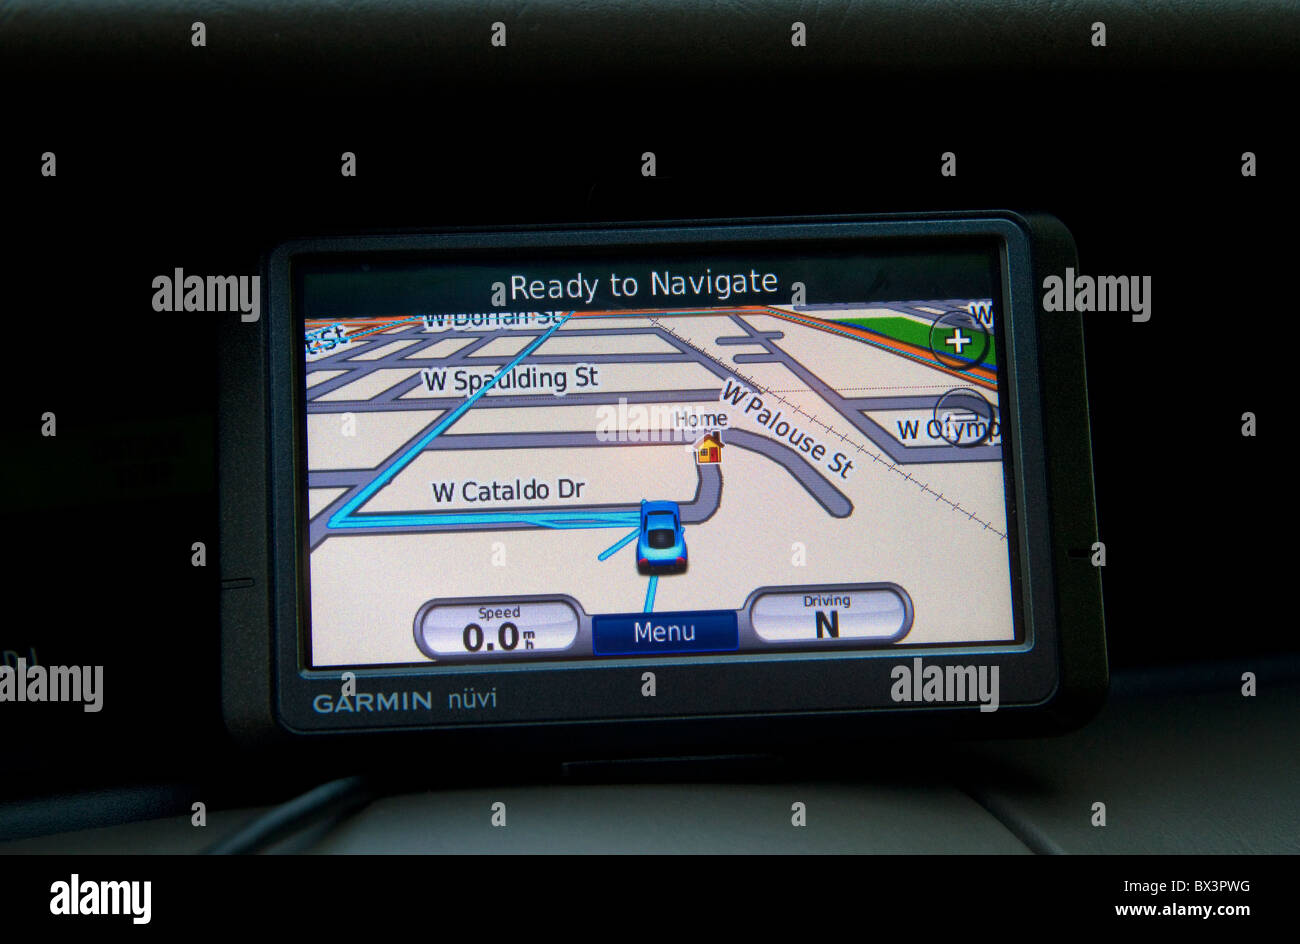 GPS navigation device being used in a car. Stock Photo